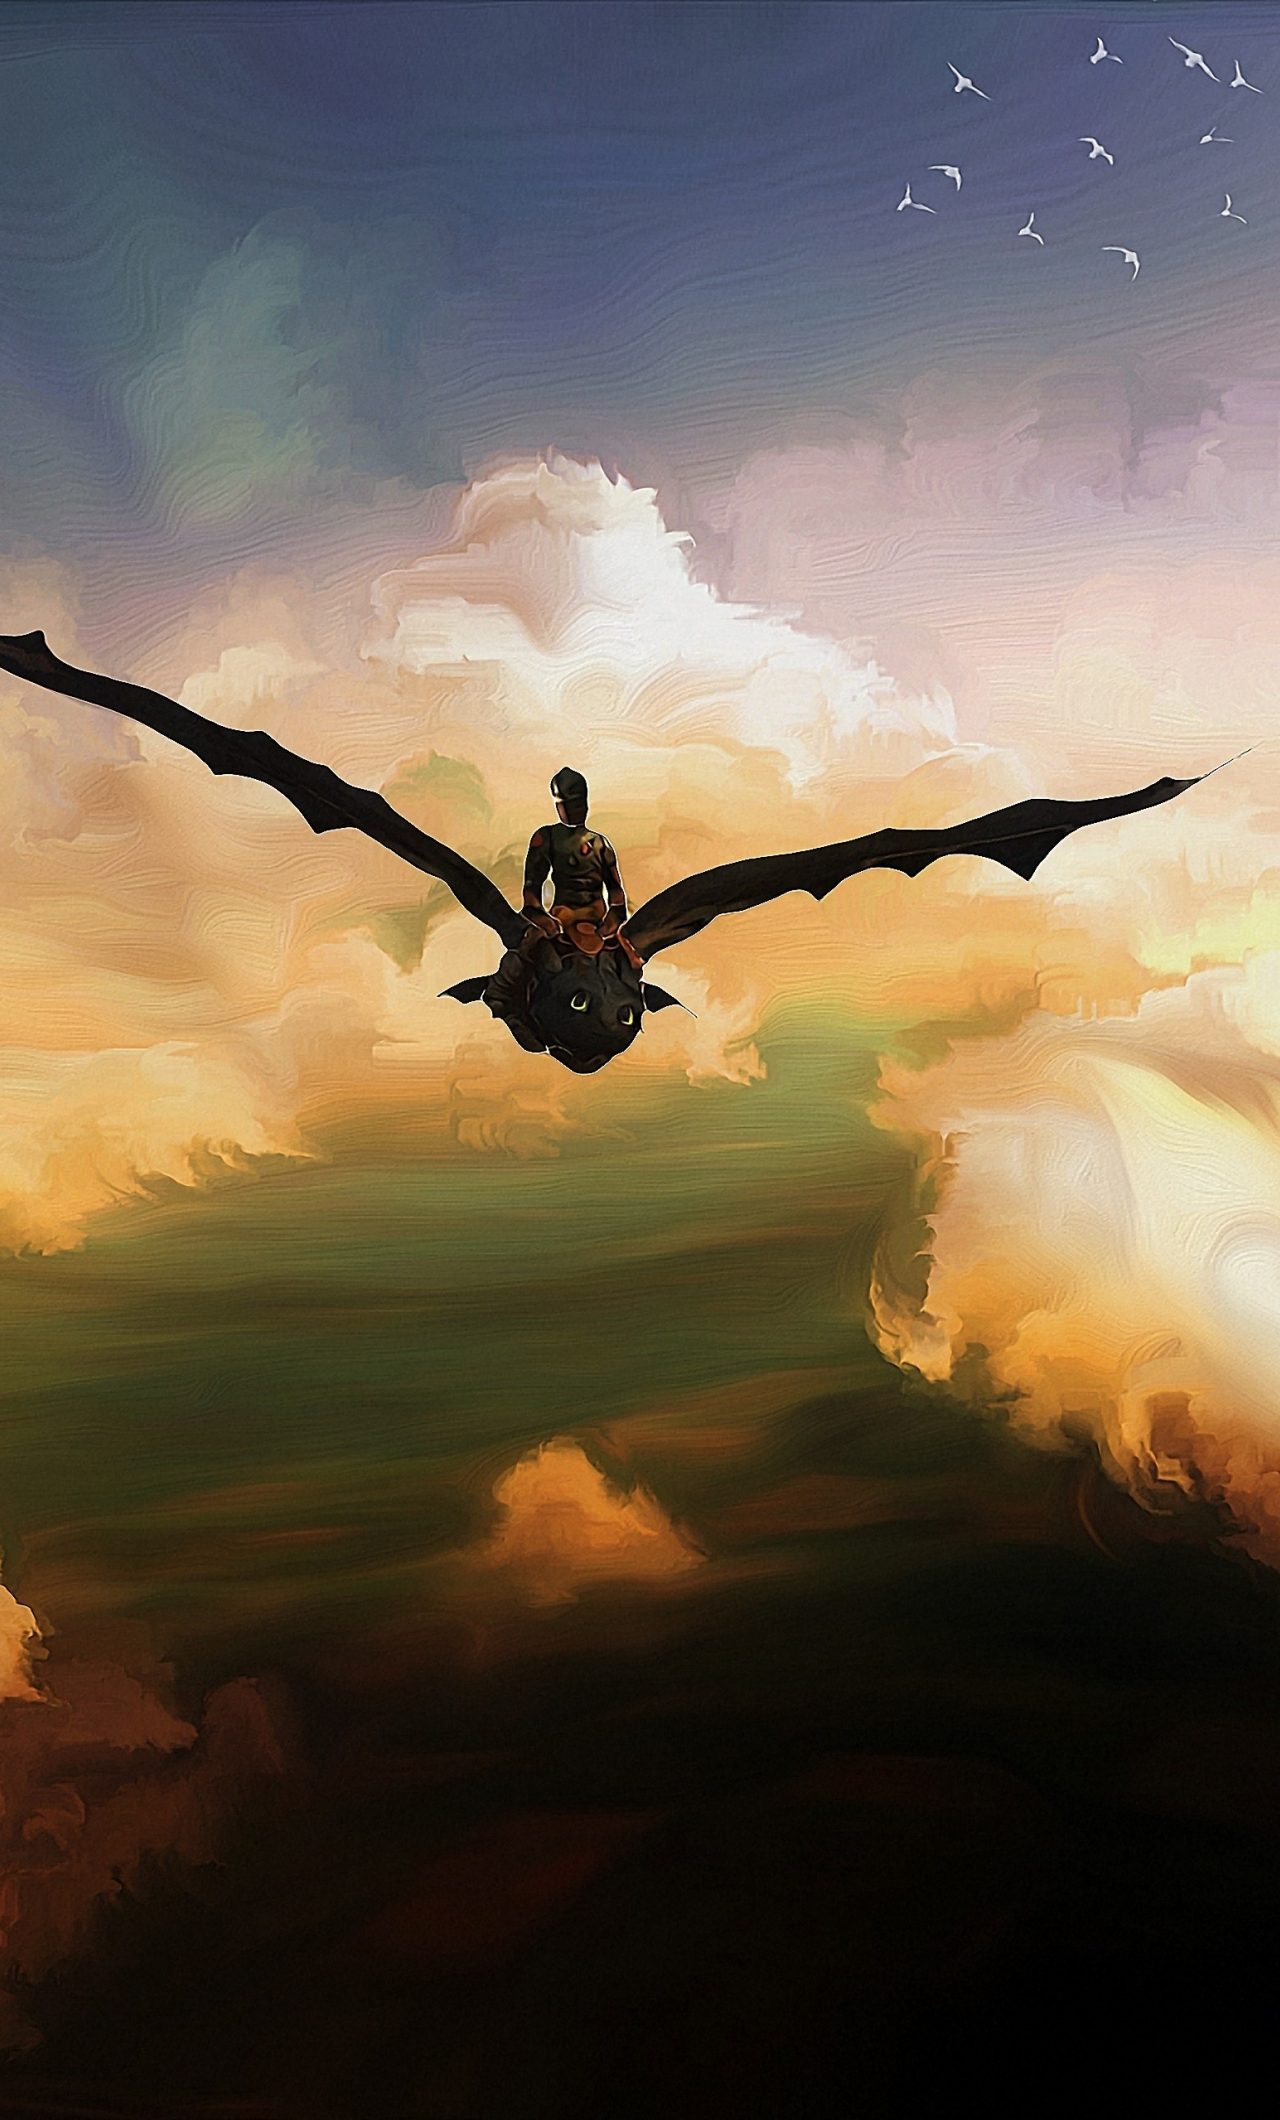 Download 1280x2120 Wallpaper Toothless How To Train Your Dragon